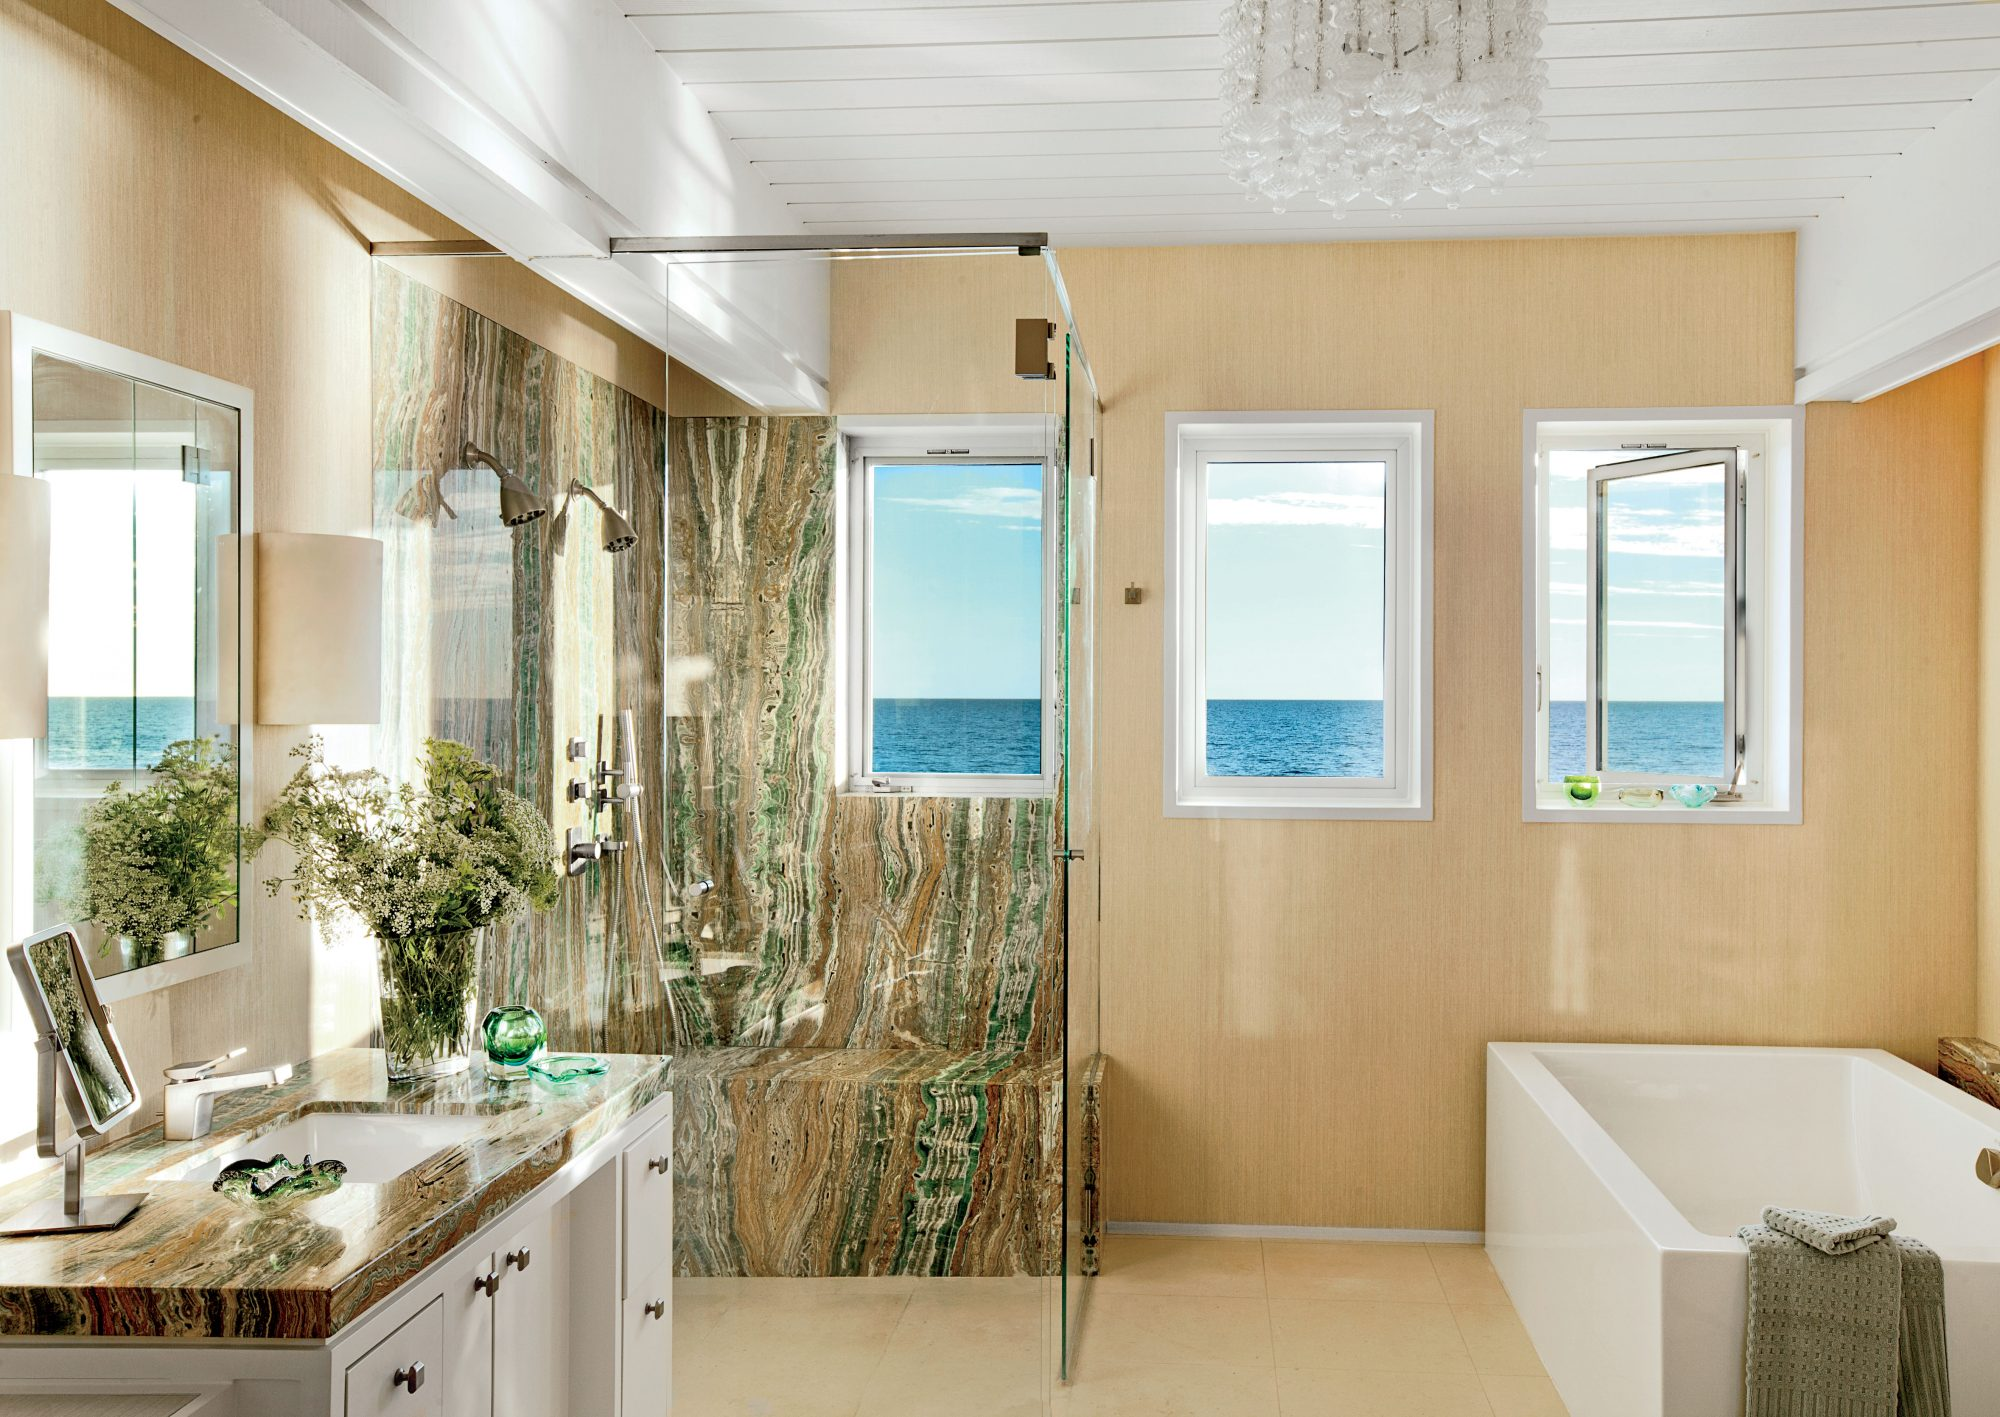 This Malibu master bath got an ultramodern update grounded in clean rectangular lines that are repeated in the soaking tub, a trio of casement windows, and translucent shower stall. Blue-green Esmeralda onyx shower walls (the marble is from Stone Resource